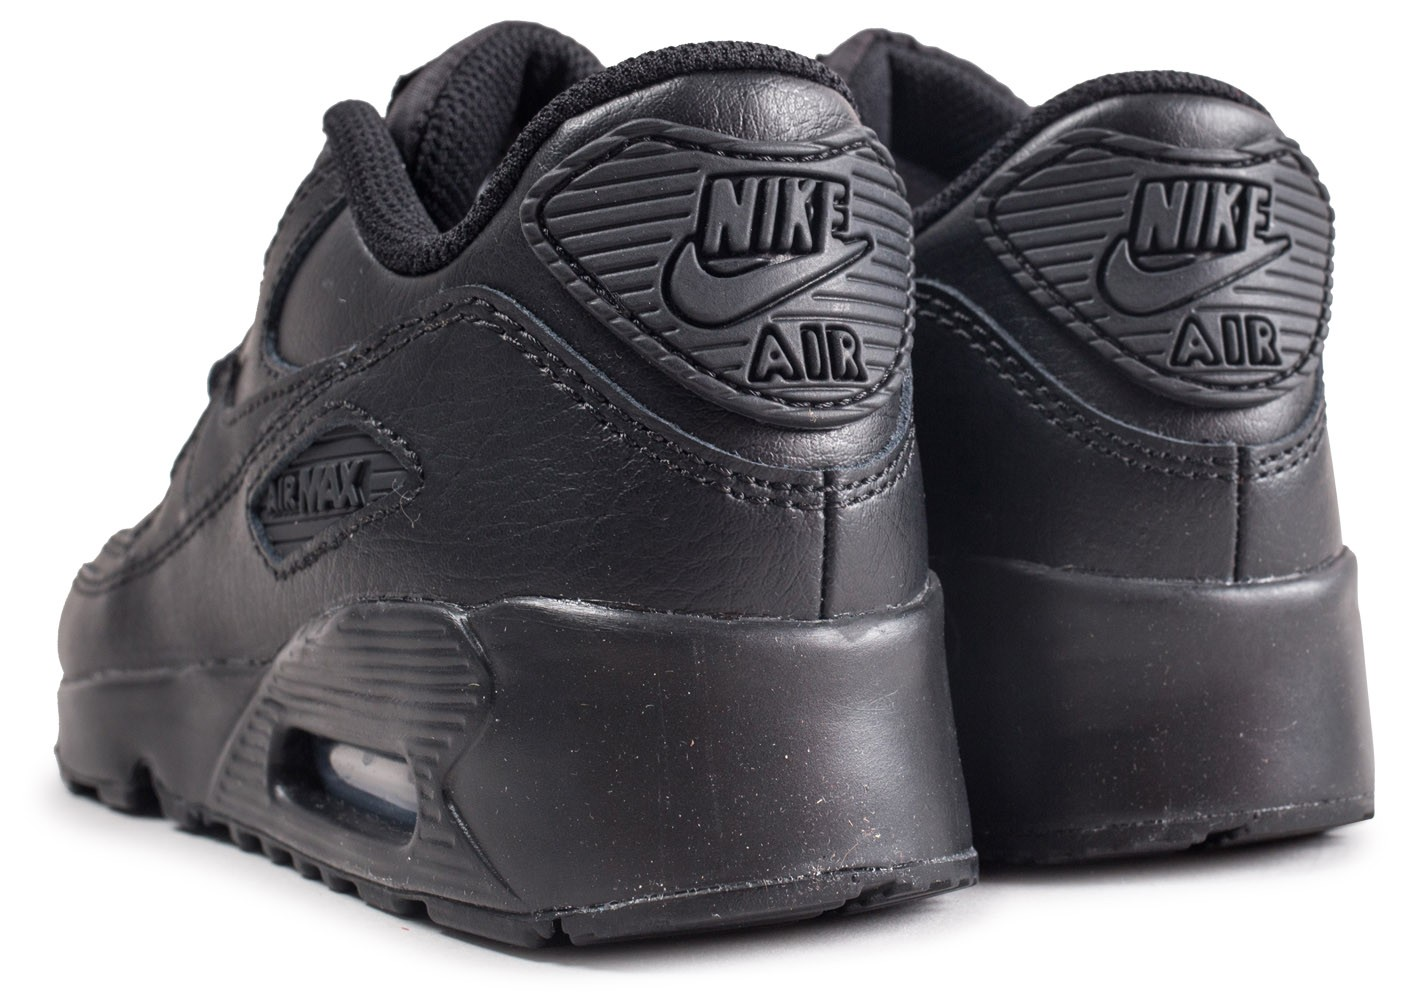 info for aaabd 40387 ... Chaussures Nike Nike Air Max 90 Leather Pre-School noire enfant vue  dessous ...